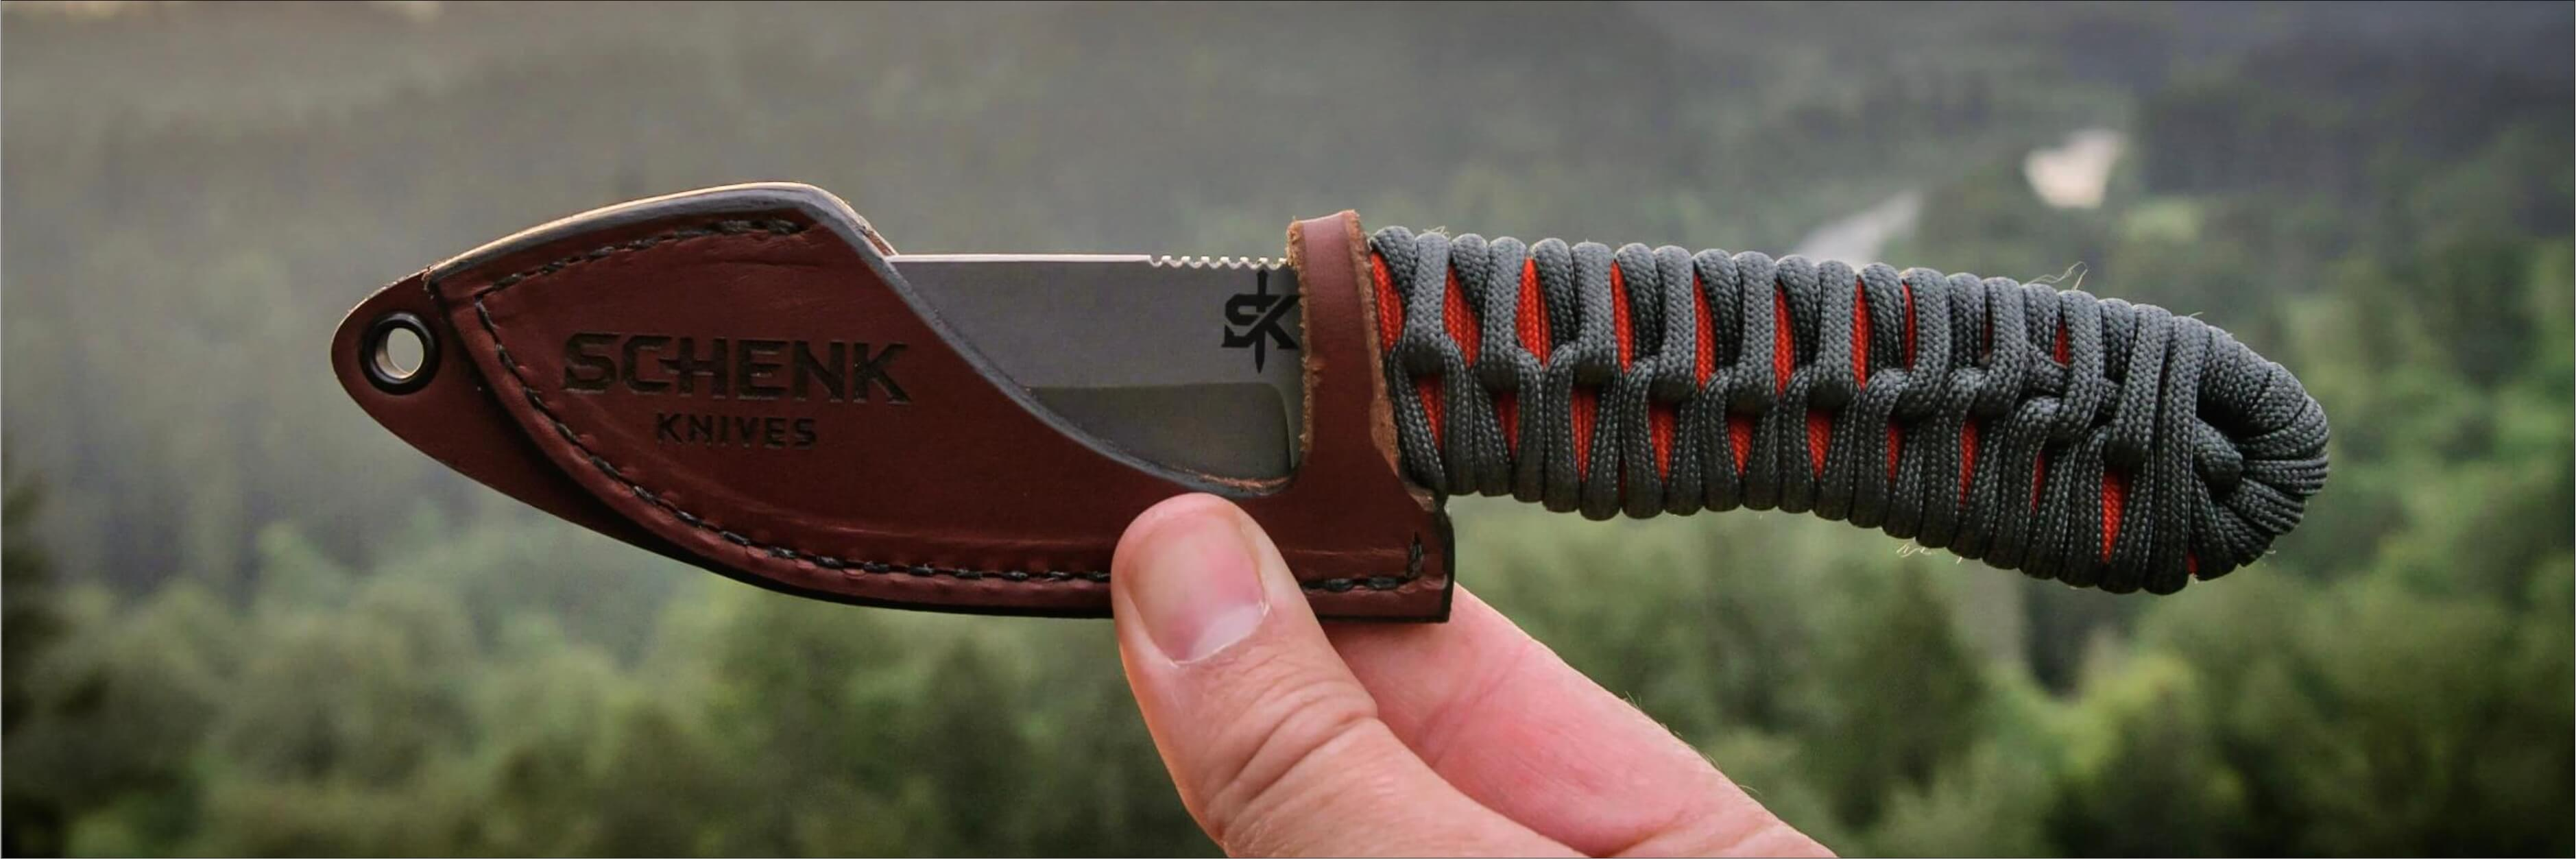 CUSTOM QUALITY FROM A FACTORY KNIFE